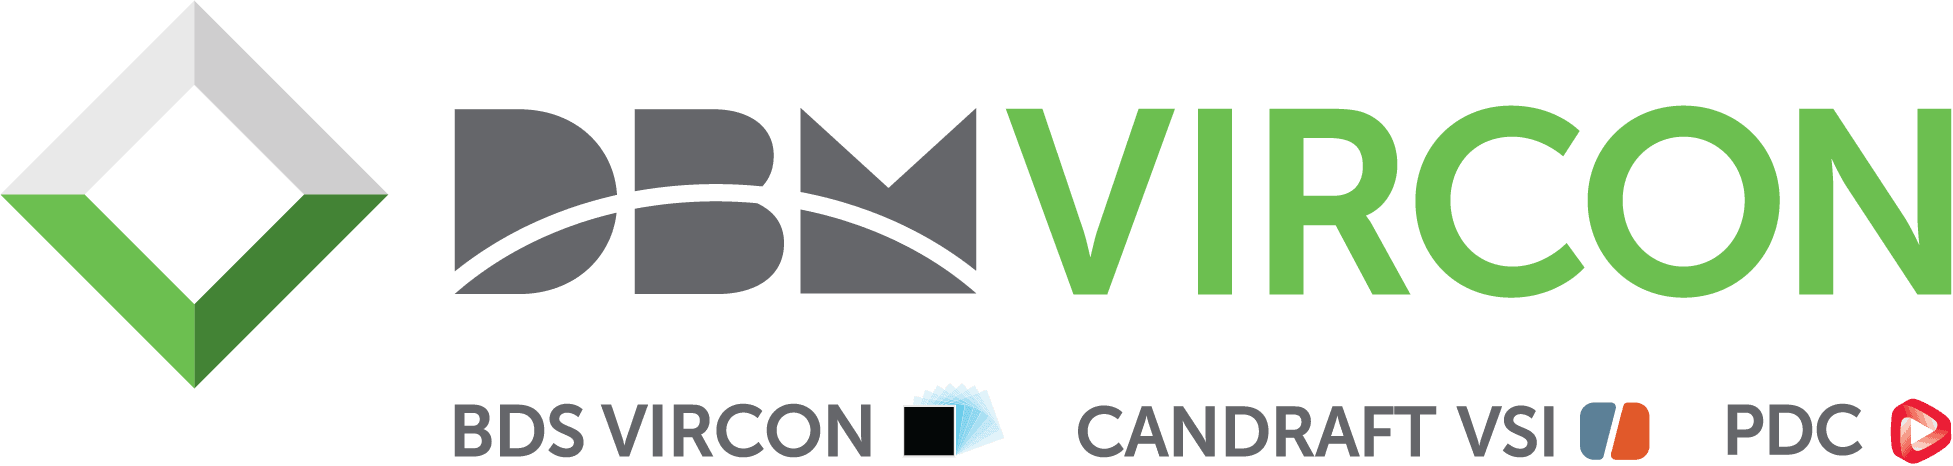 Rebrand - PDC Group BDS Vircon CandraftVSI to be known as DBM Vircon